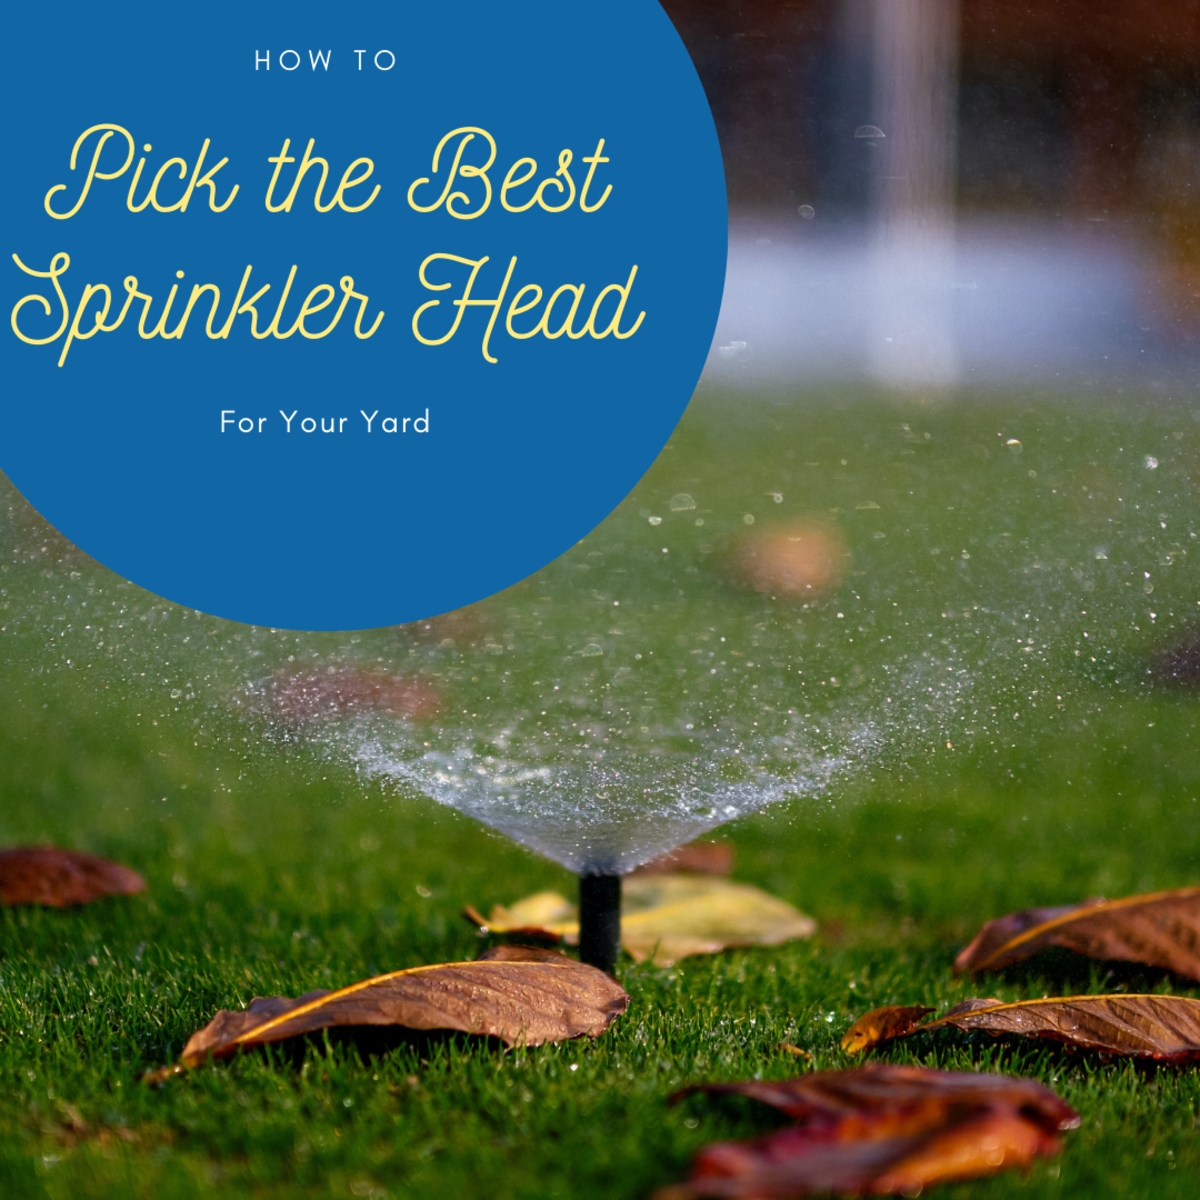 Picking the best sprinkler head for your yard can optimize the health of your plants and trees.